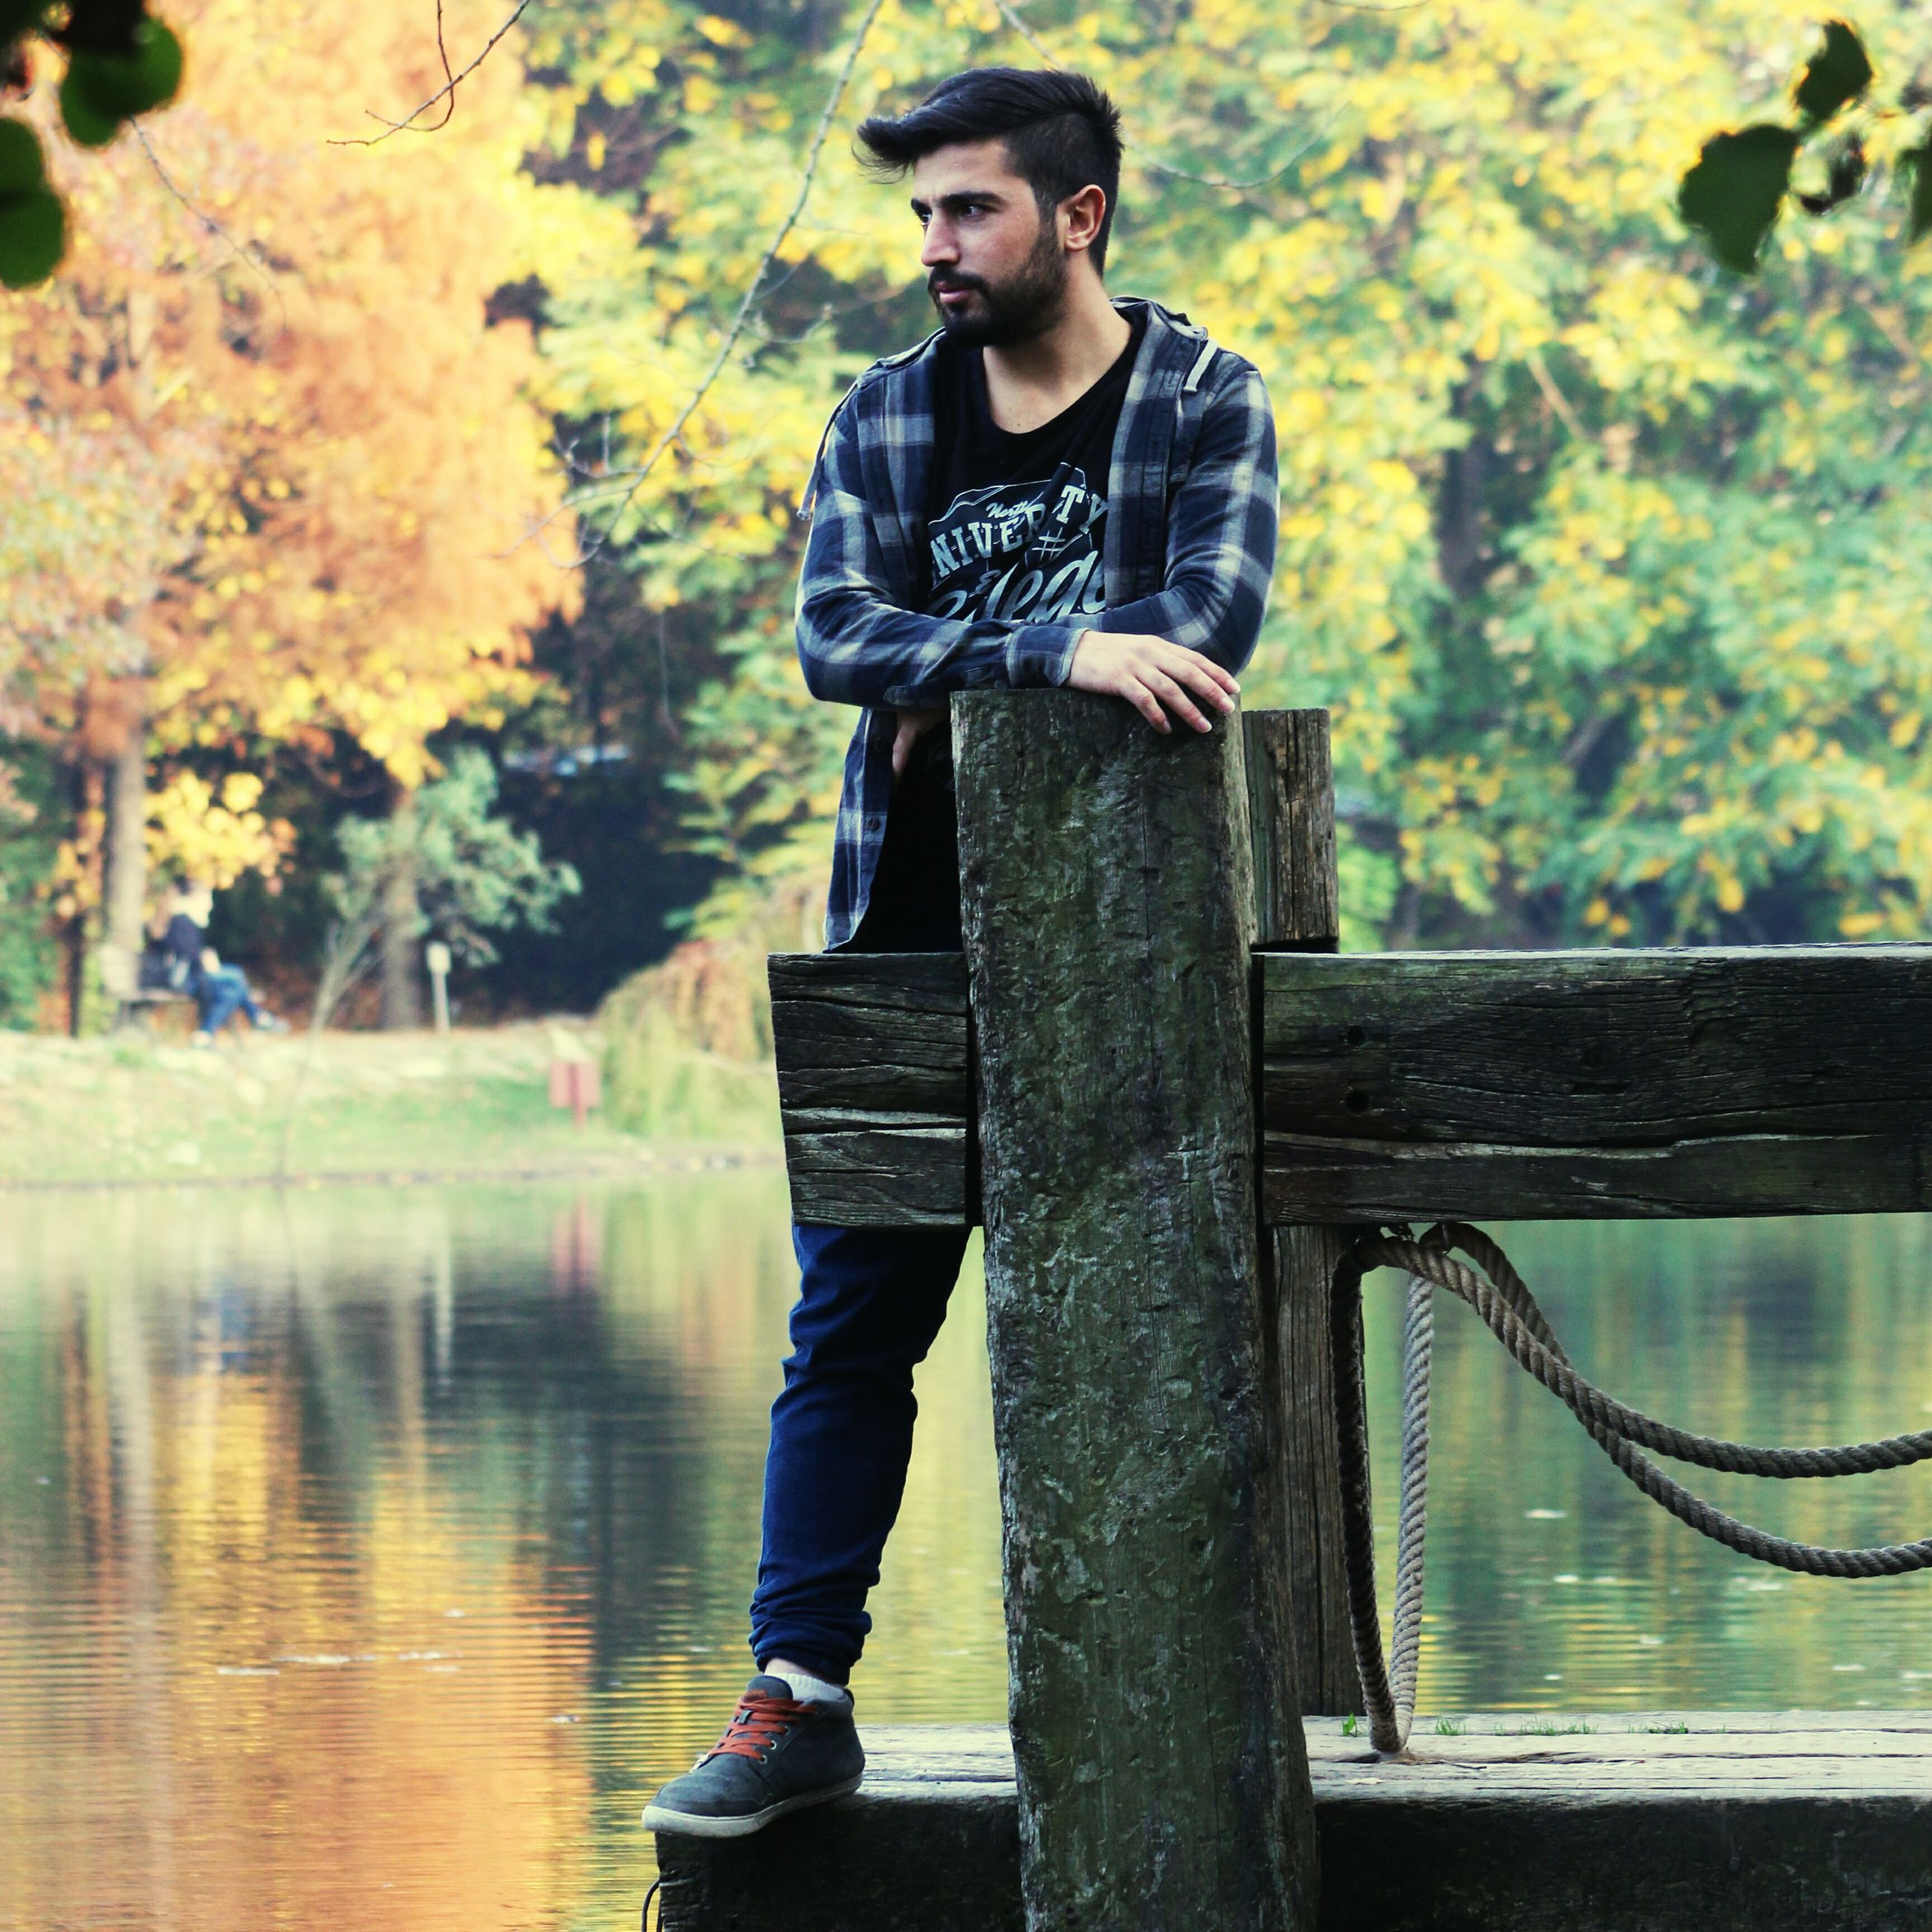 standing, person, casual clothing, lifestyles, looking at camera, front view, young adult, tree, water, portrait, leisure activity, three quarter length, full length, wood - material, young men, smiling, outdoors, day